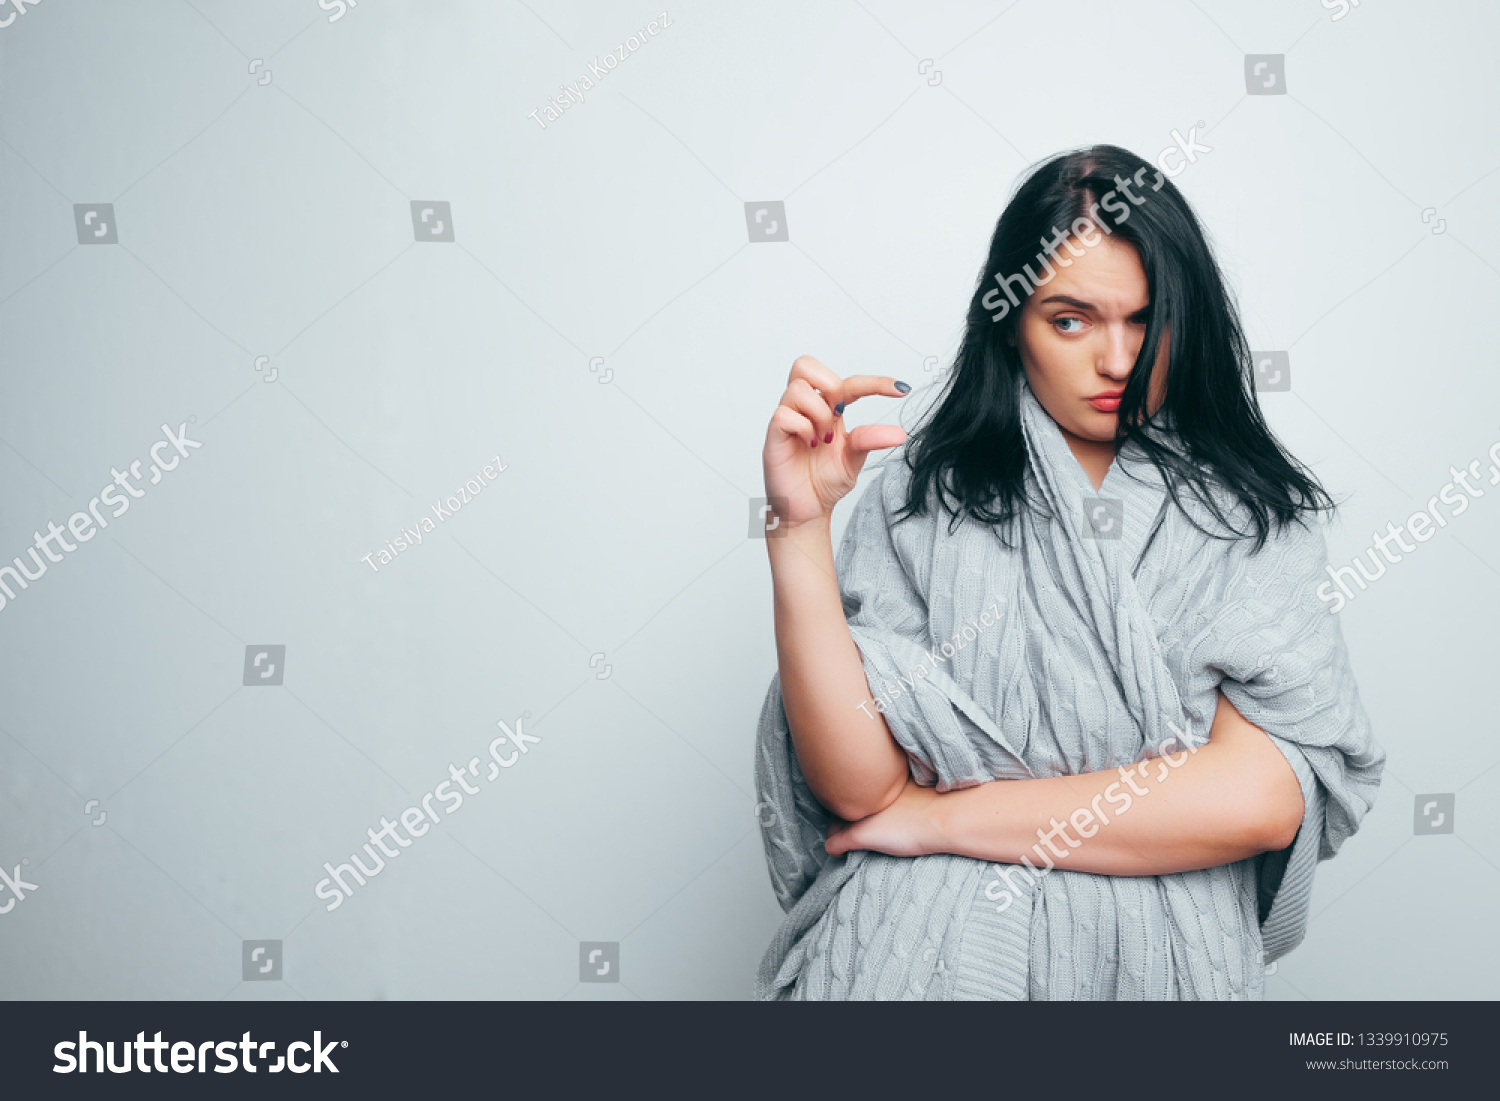 stock-photo-funny-excited-woman-showing-something-very-tiny-little-size-by-fingers-happy-girl-with-open-mouth-1339910975.jpg